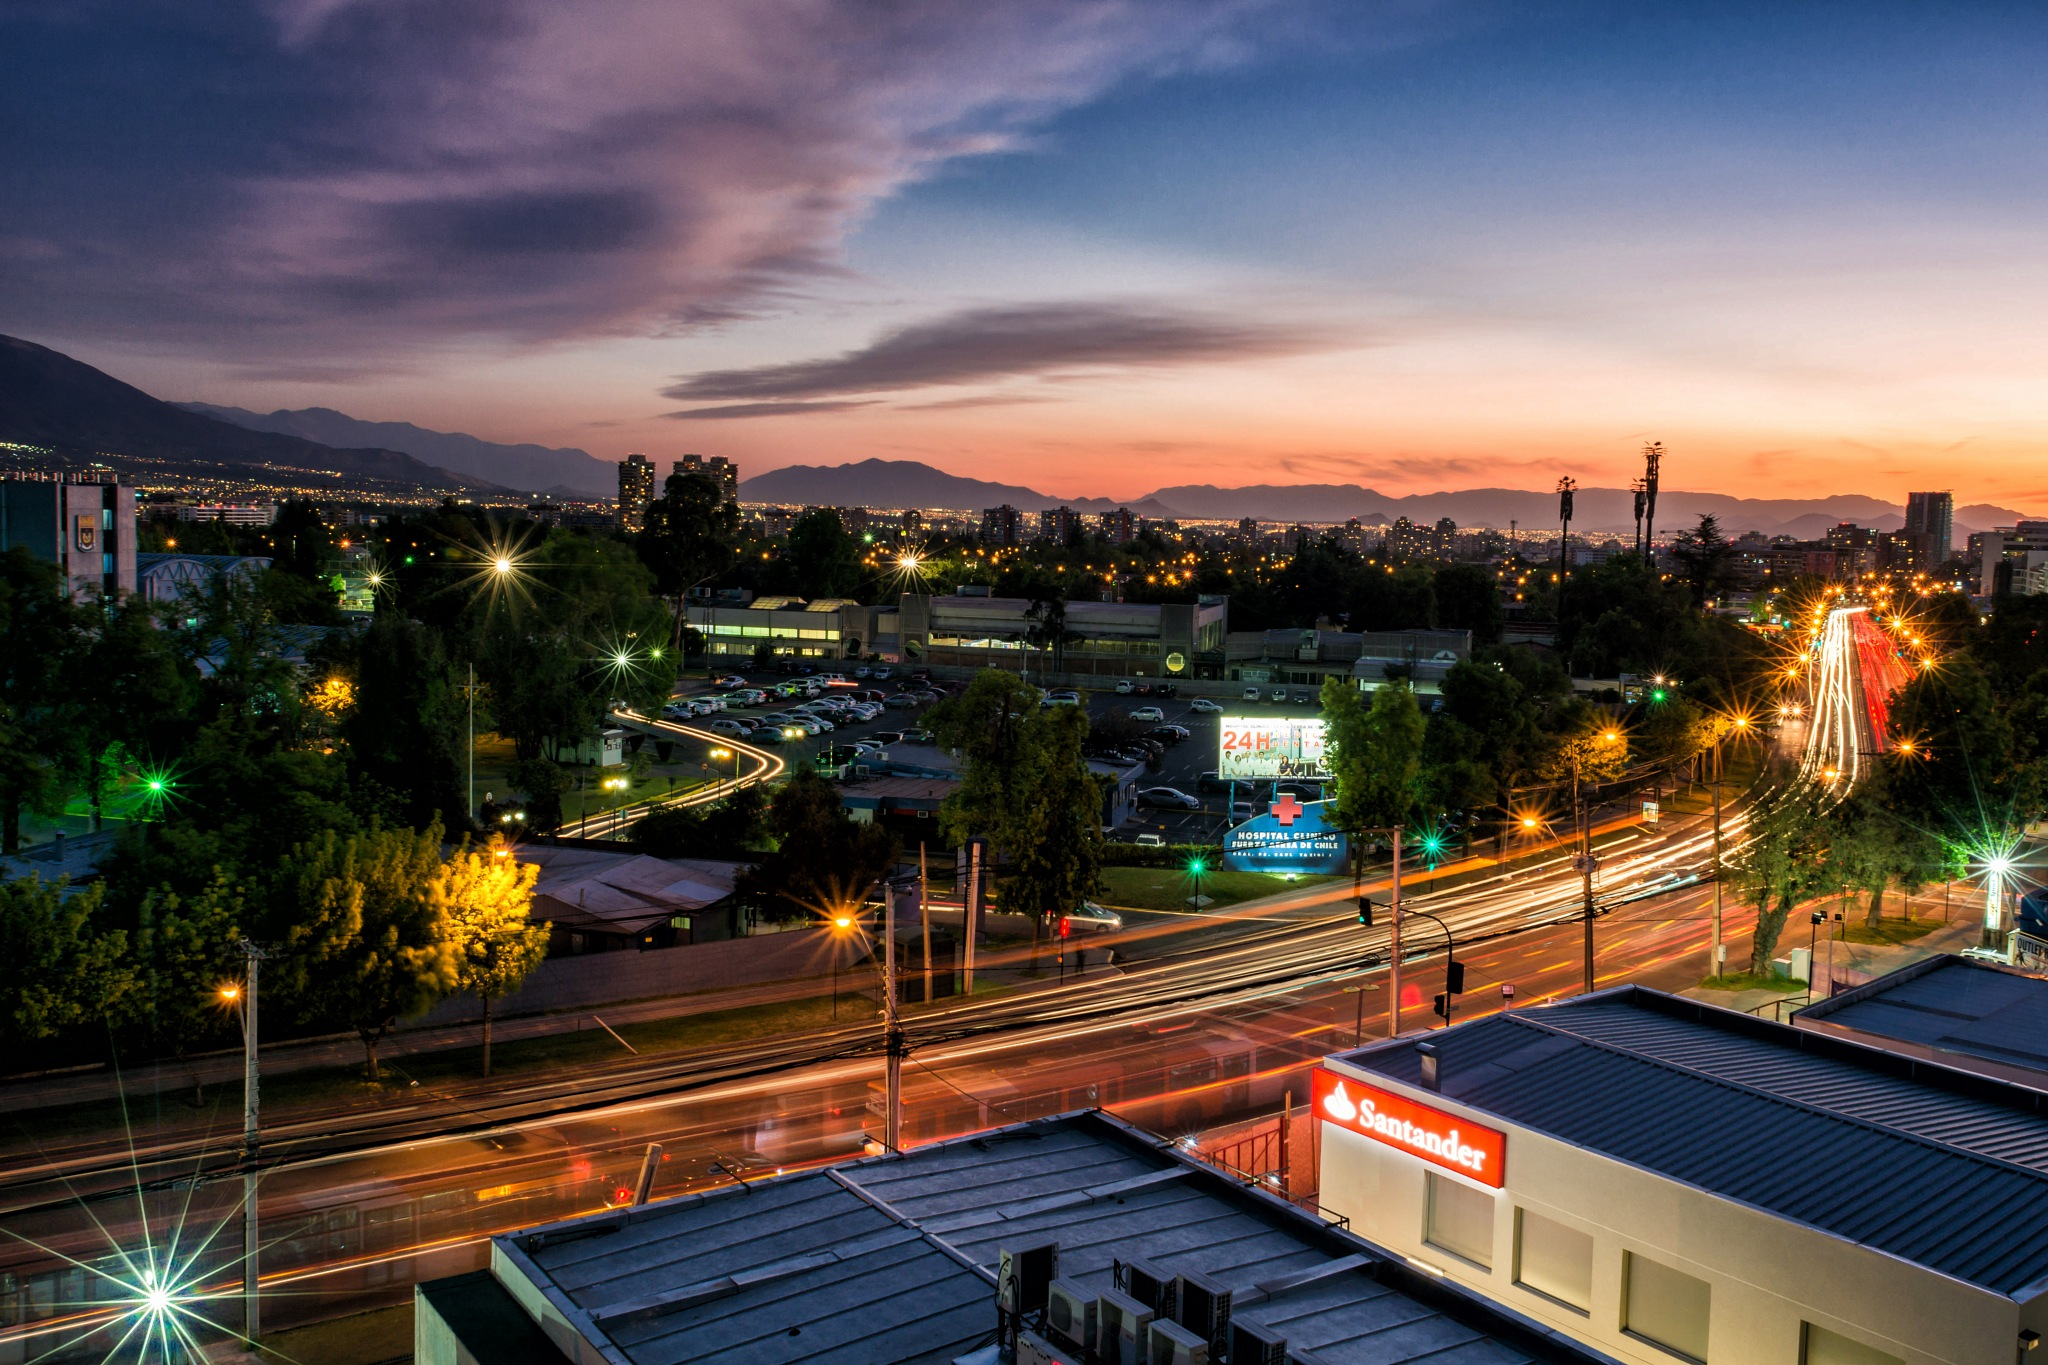 Santiago Sunset by Donny Campos